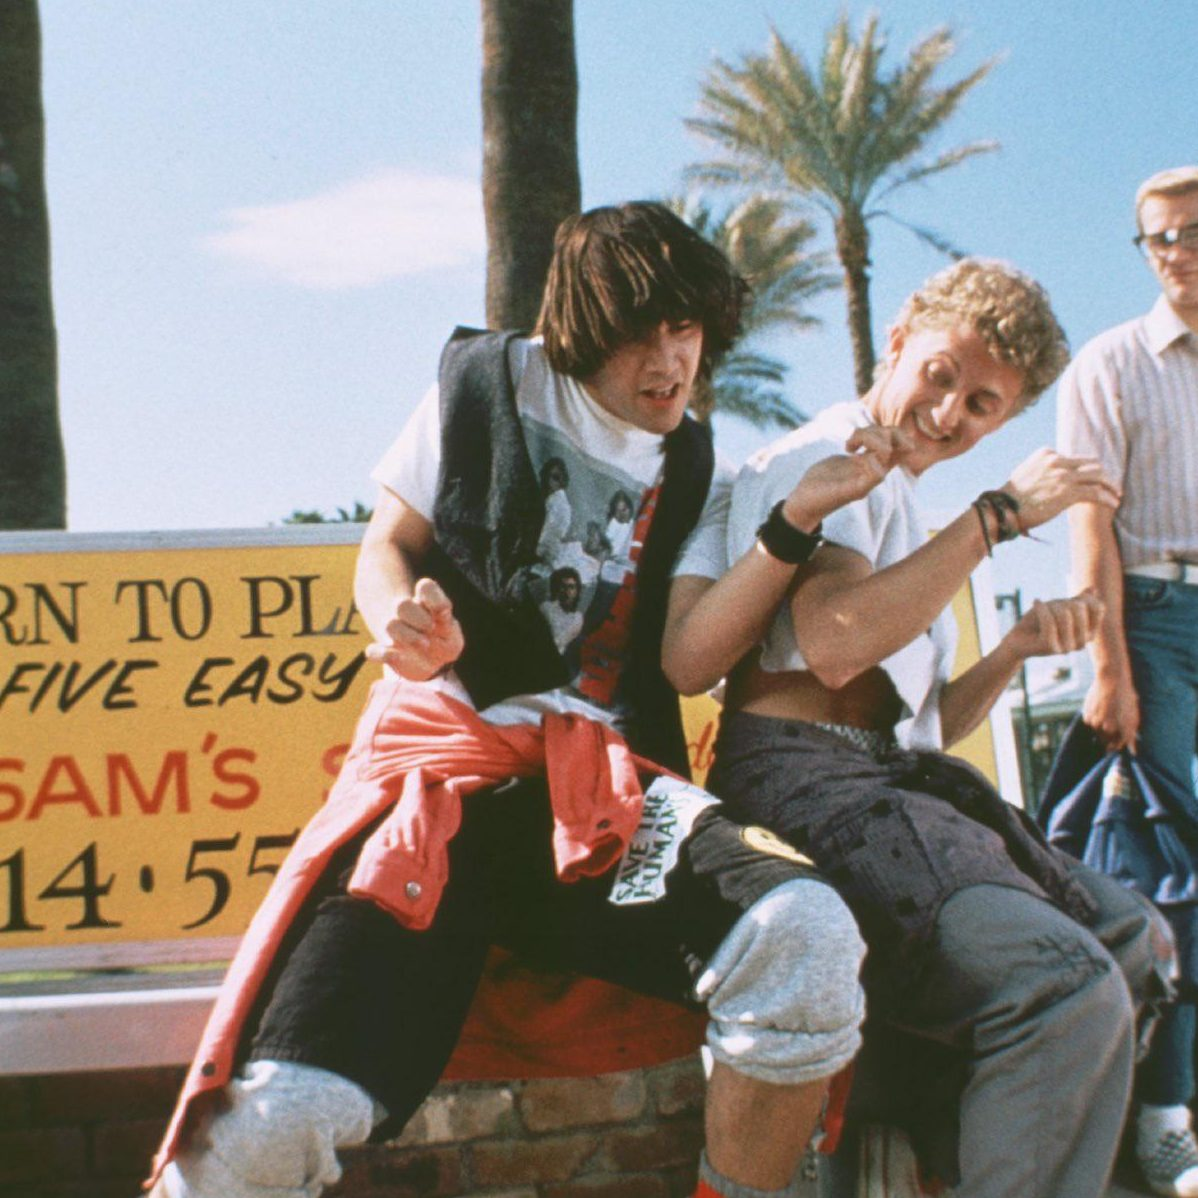 xtjbczdhkxh41 e1599574473578 25 Totally Non-Heinous Facts About Bill & Ted's Excellent Adventure!